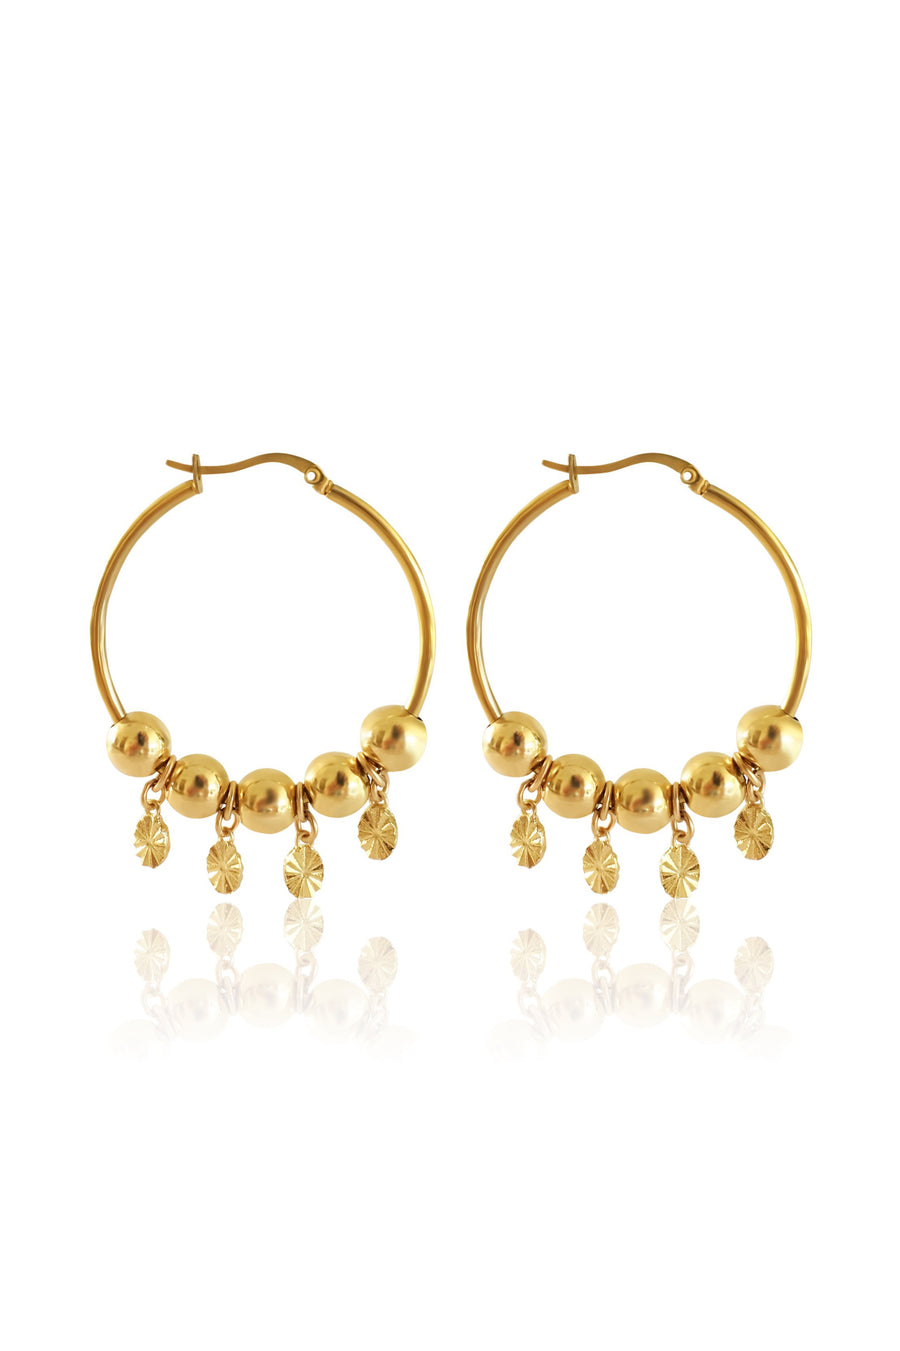 Sammi Earrings for $39.00